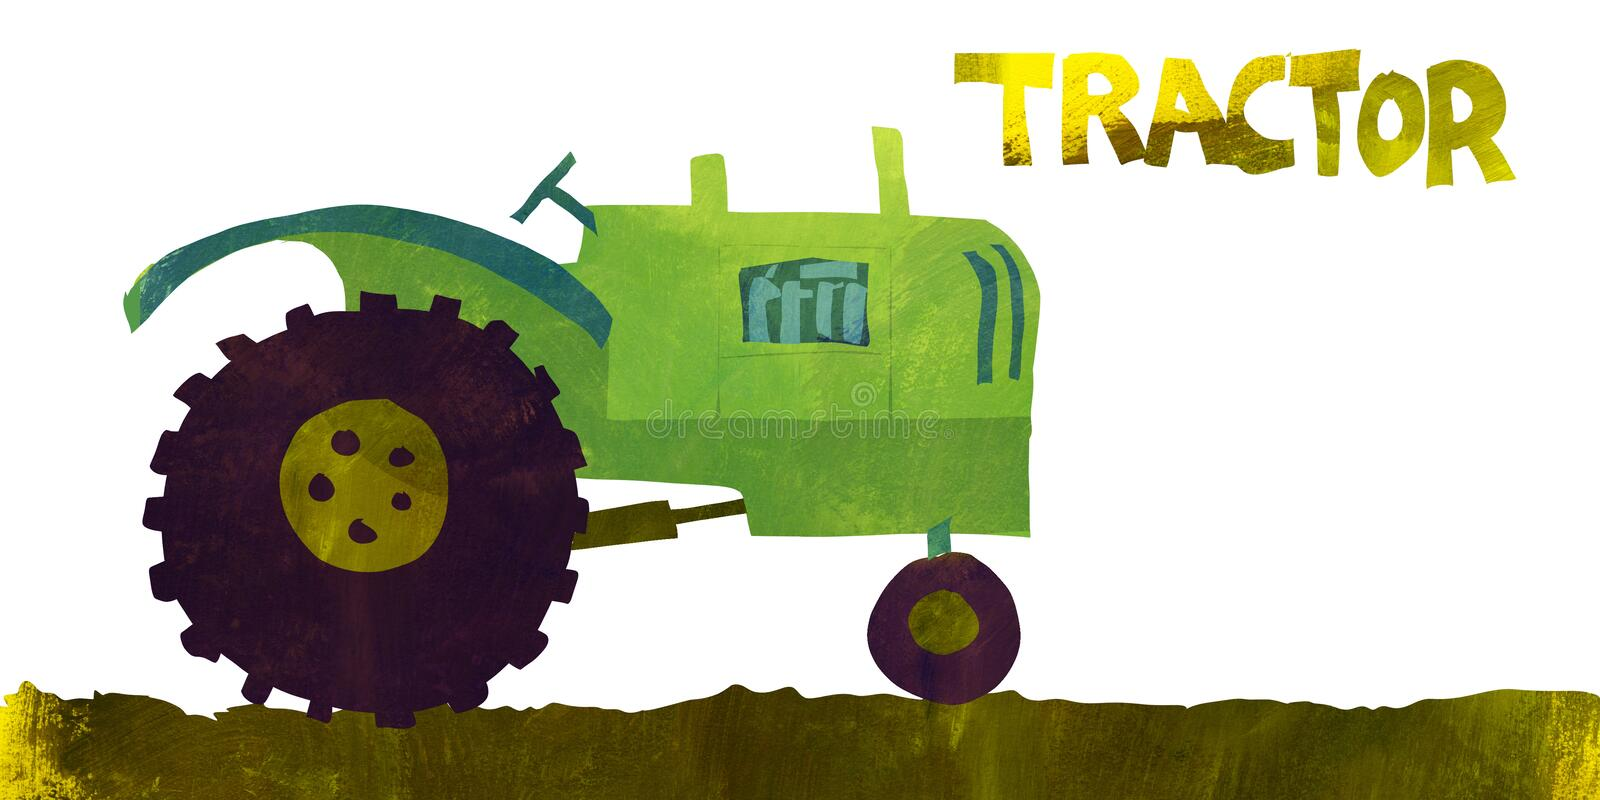 Farm Tractor. Illustration of a tractor in a simple flat textured style royalty free illustration